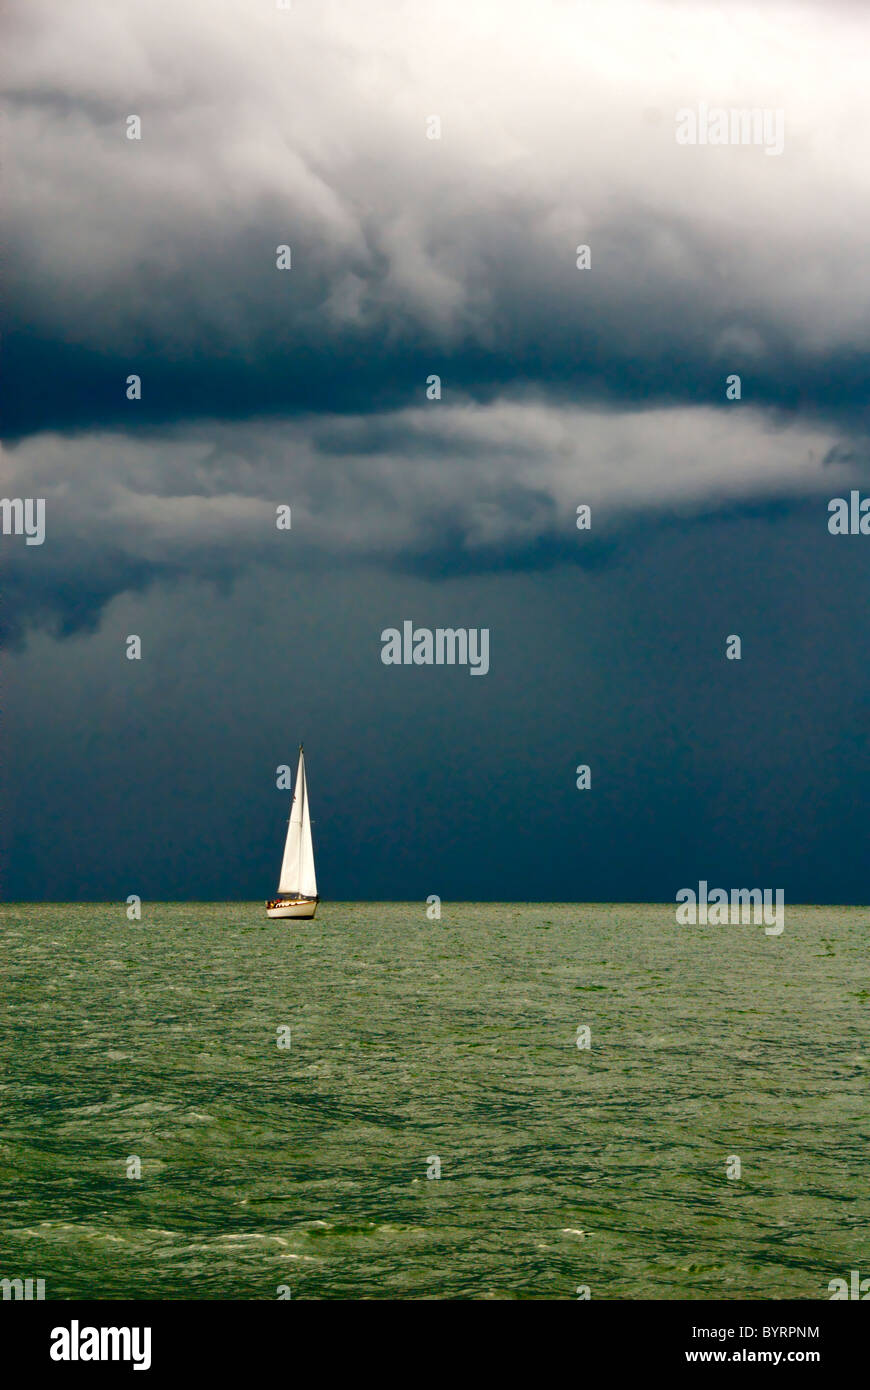 Sailboat in Storm with Green Seas - Stock Image